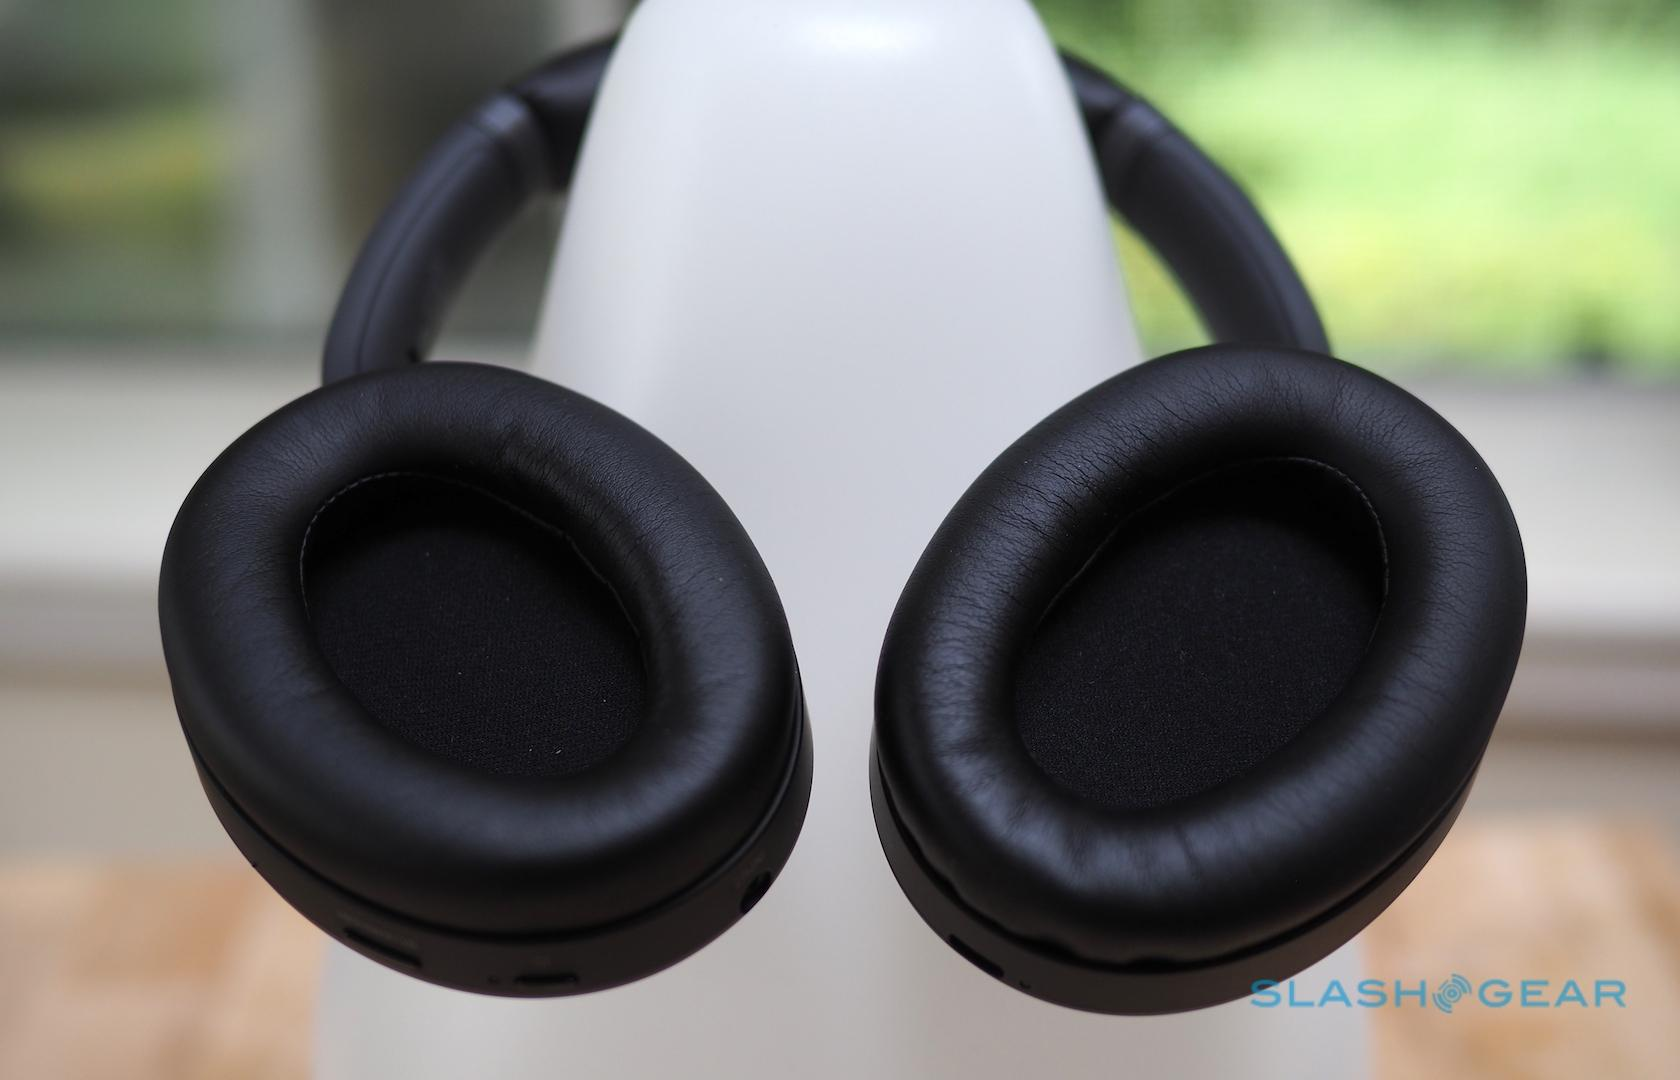 Sony WH-1000XM3 Review: King of noise-canceling headphones - SlashGear